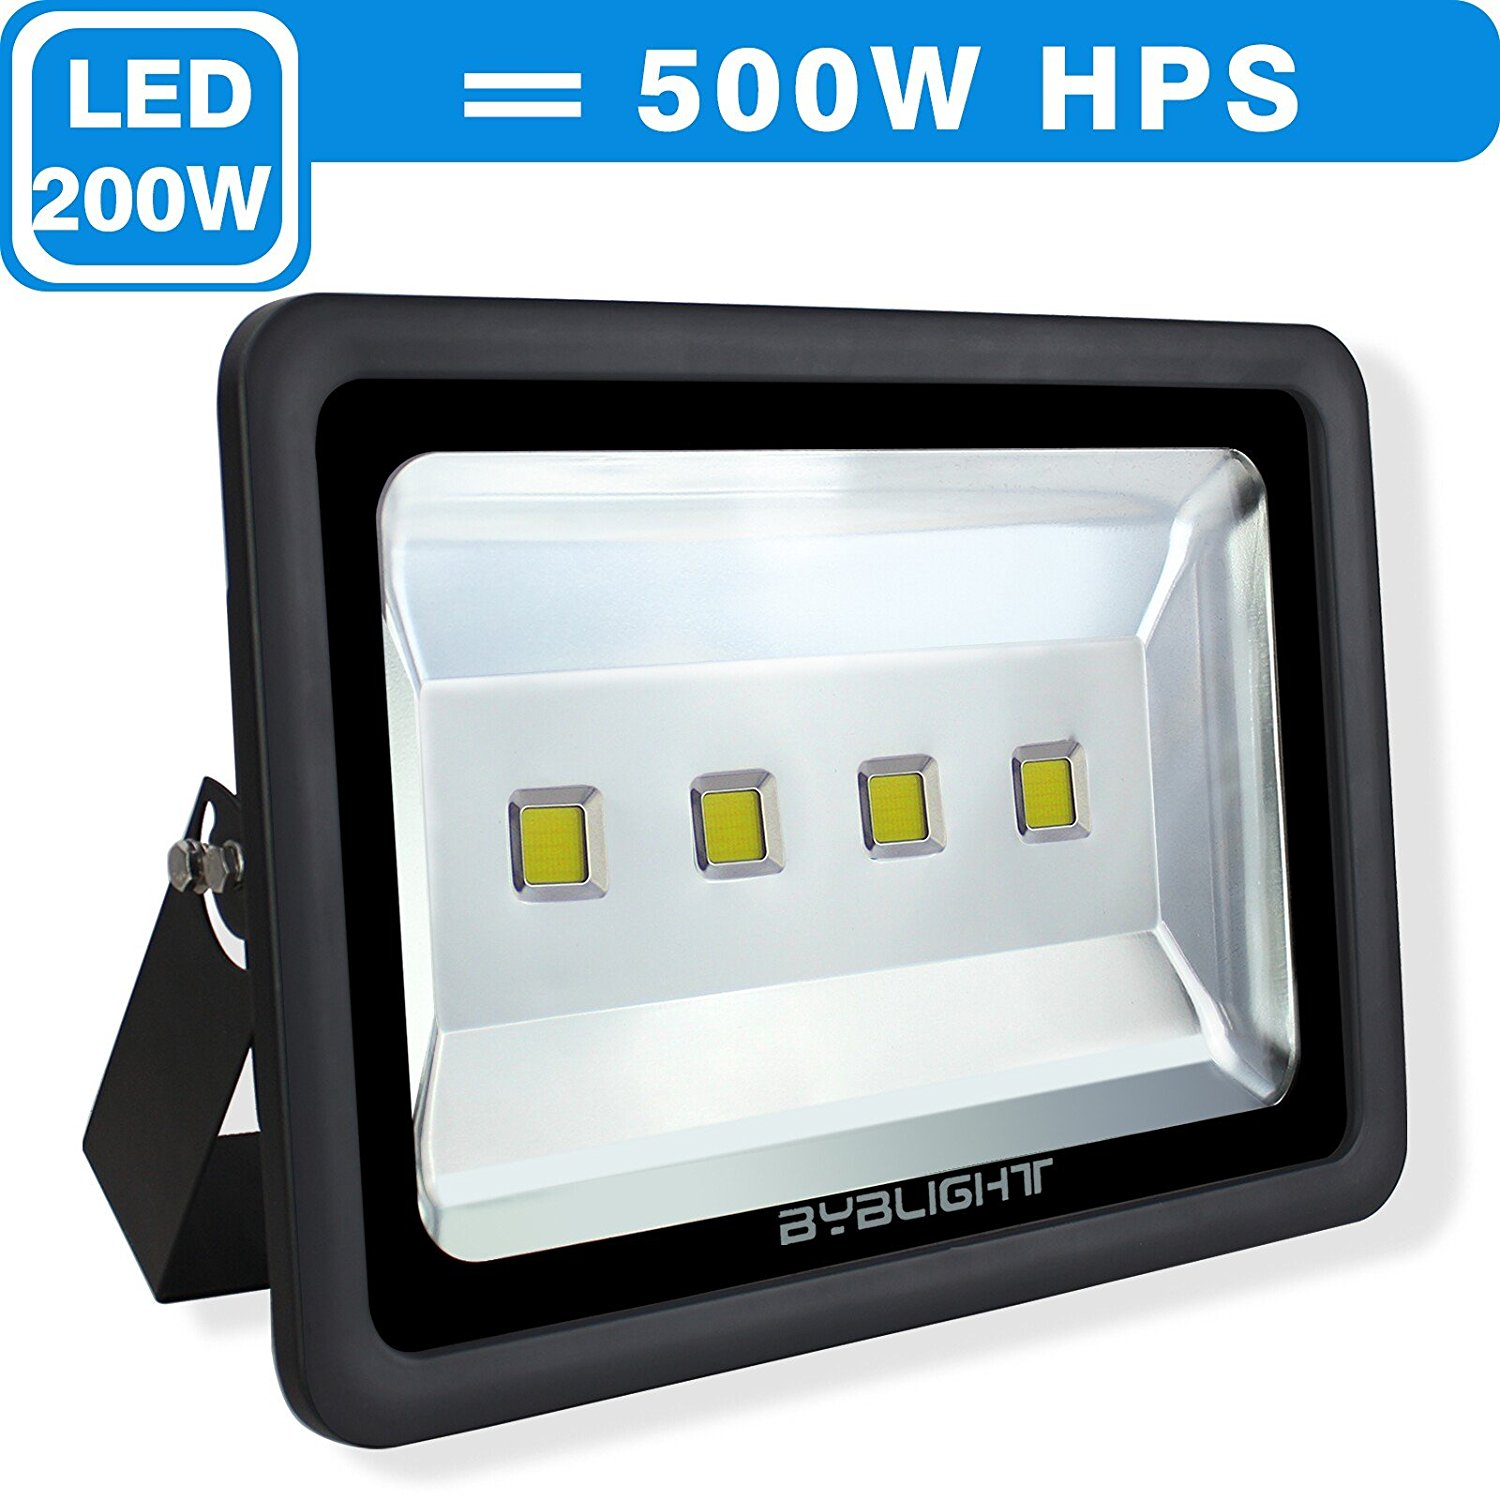 Byb 200 watt super bright outdoor led flood light 500w hps bulb please upgrade to full version of magic zoom plus aloadofball Images